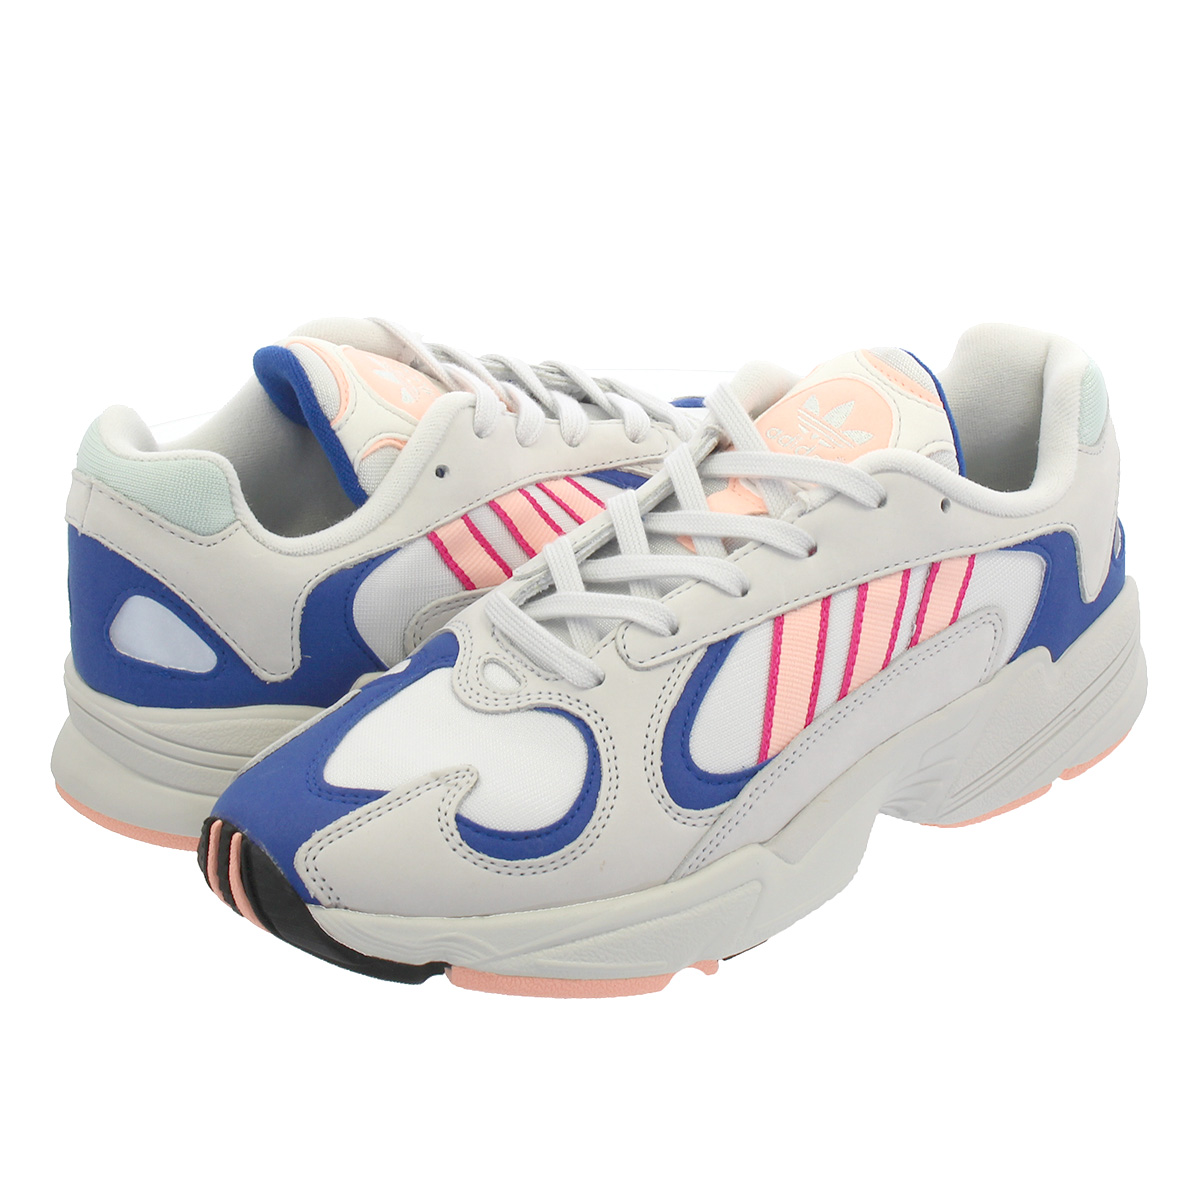 【お買い物マラソンSALE】 adidas YUNG-1 CRYSTAL 【adidas Originals】 アディダス ヤング 1 WHITE/CLEAR ORANGE/COLLEGE ROYAL bd7654